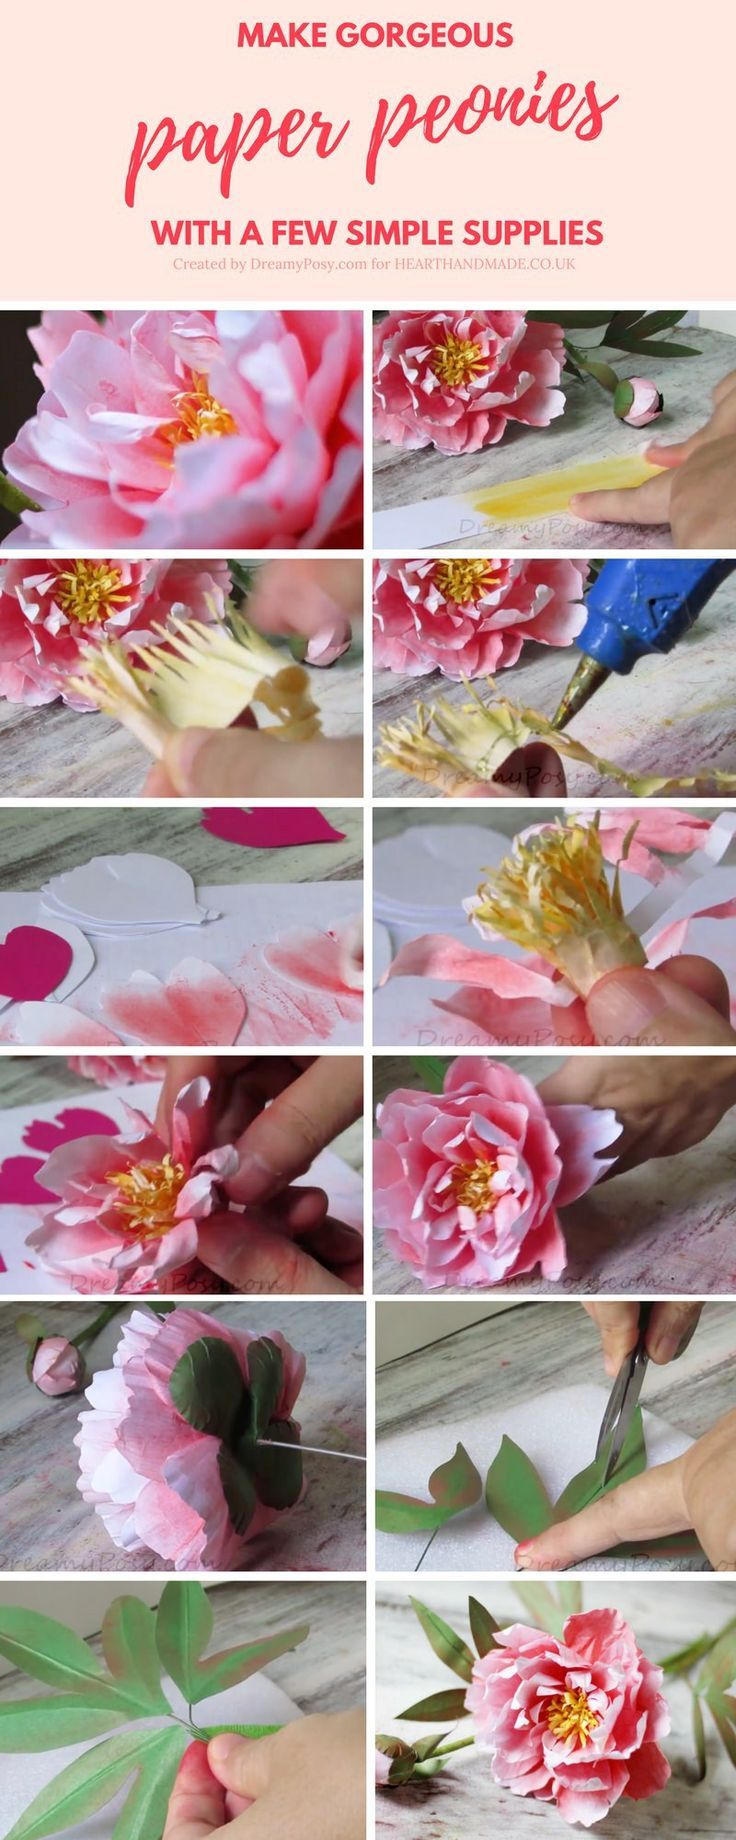 Make Gorgeous Paper Peonies With A Few Simple Supplies Pinterest